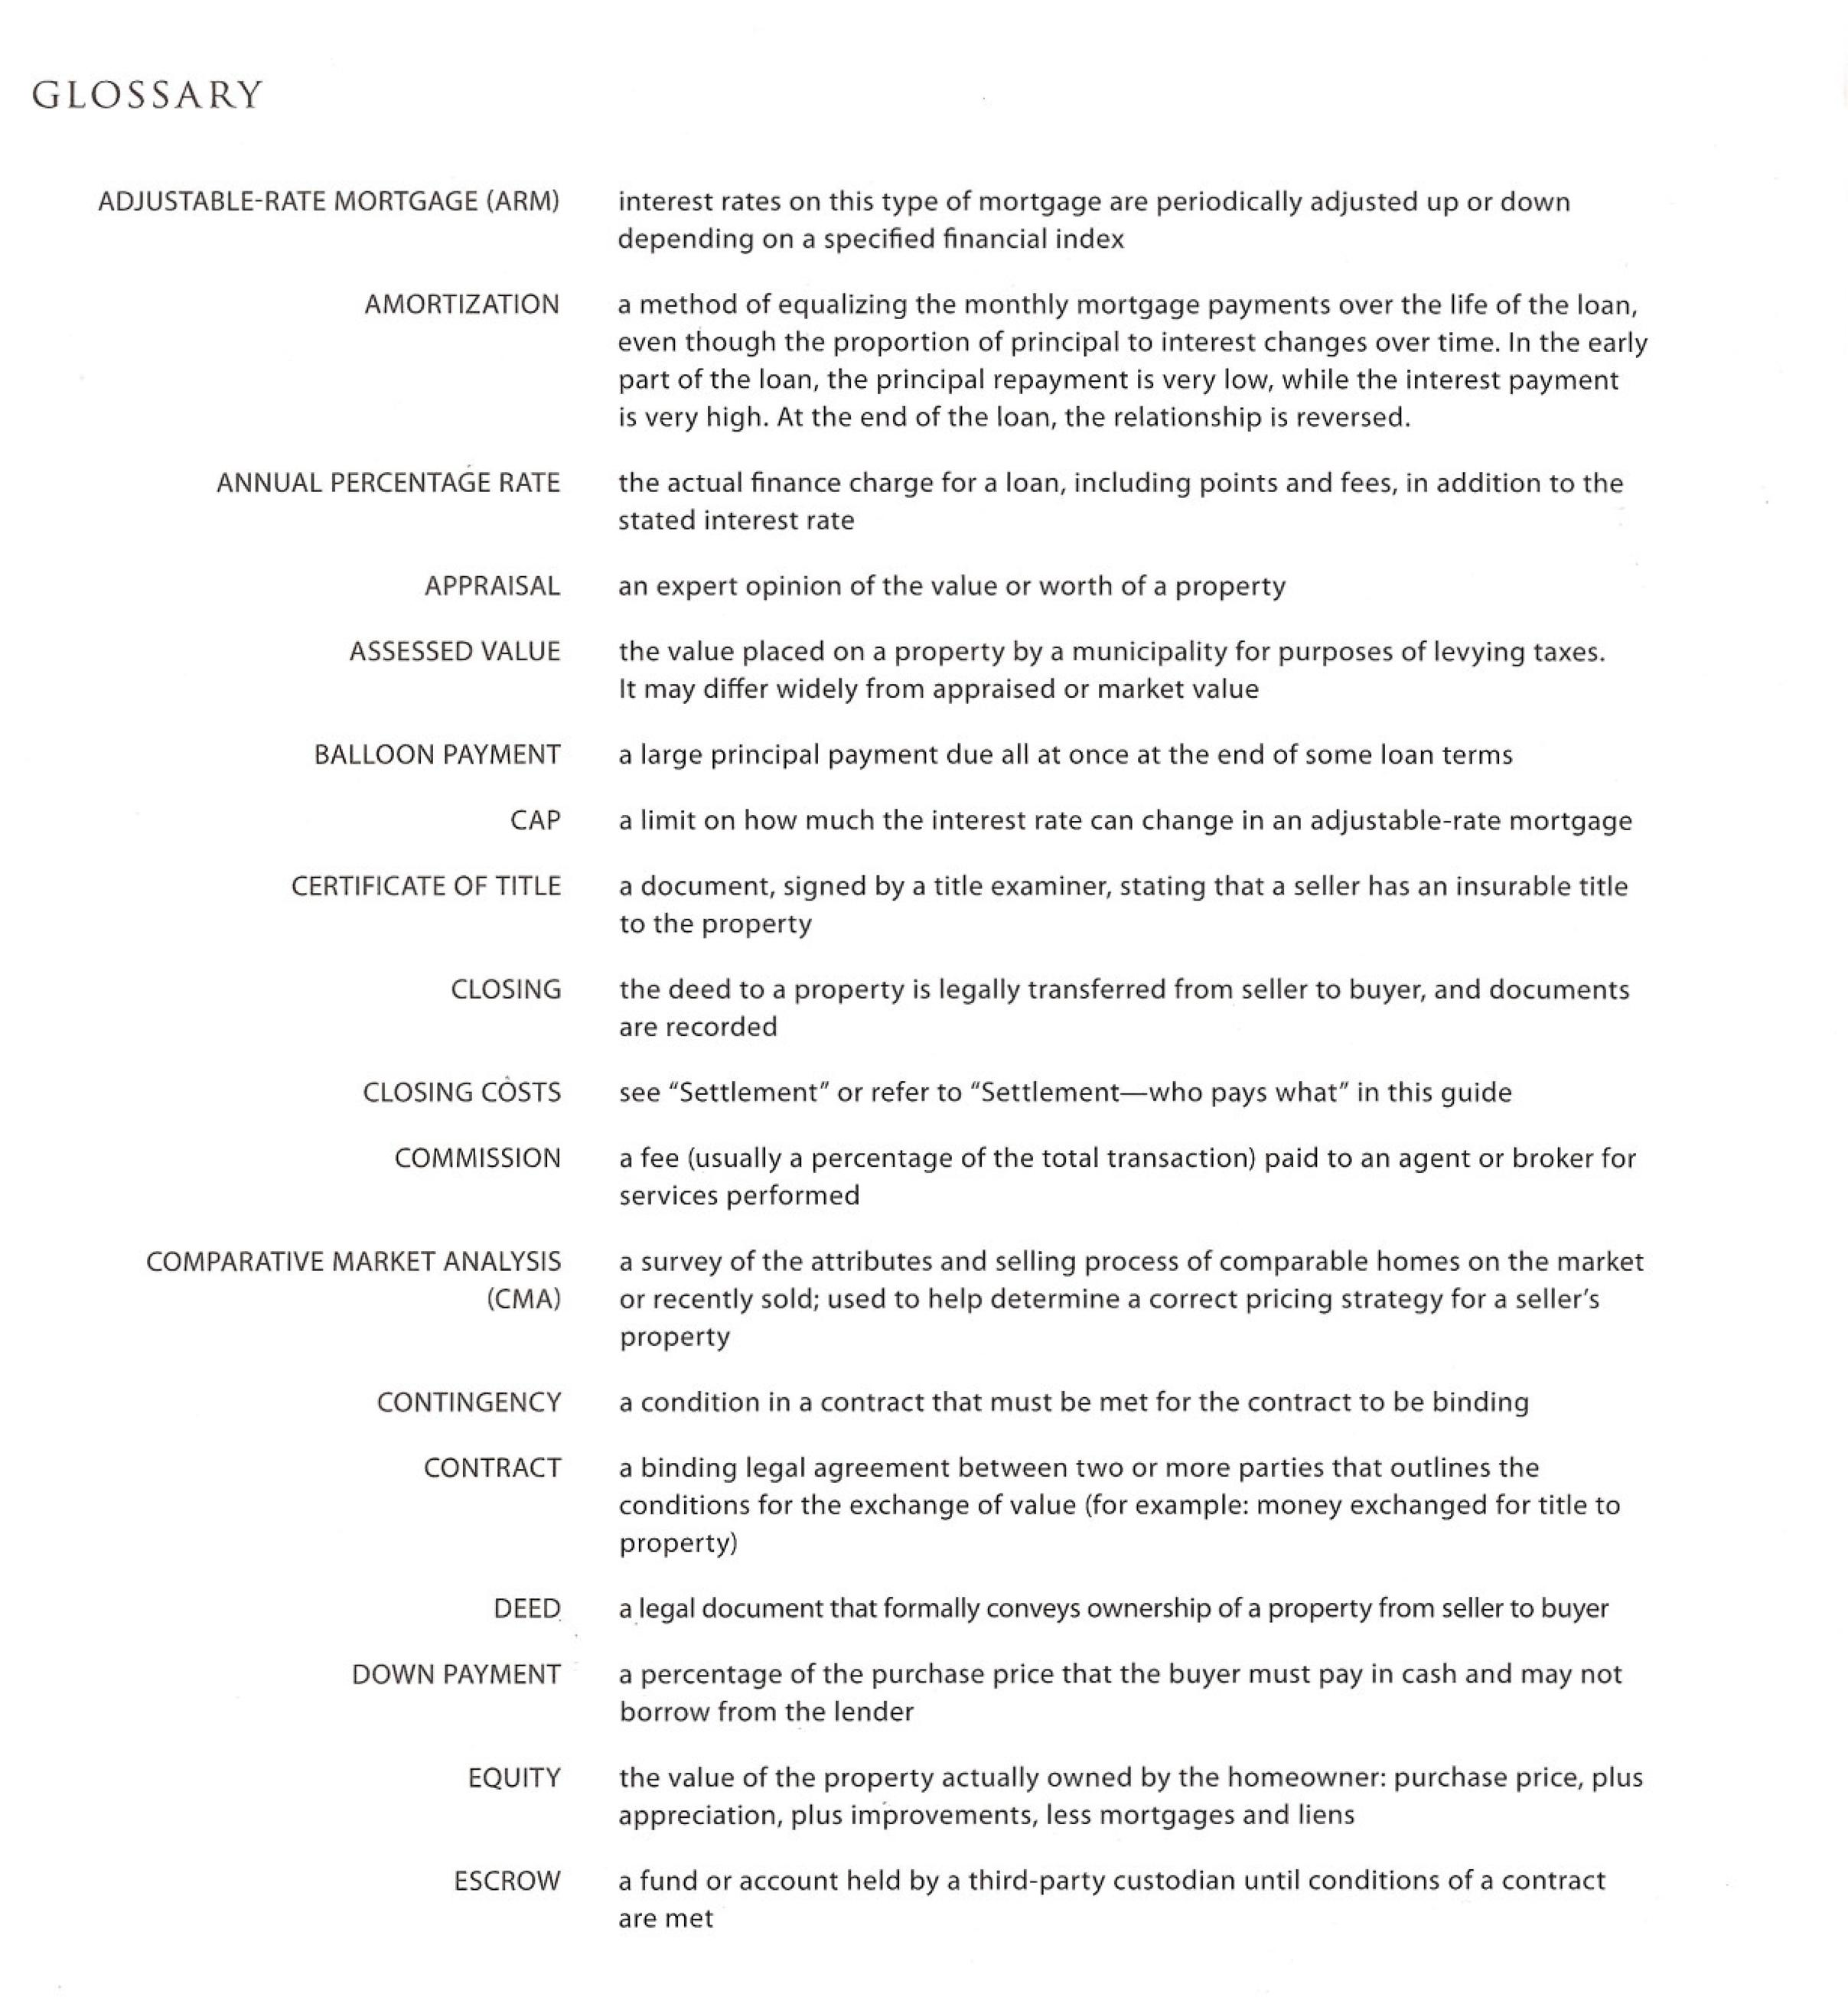 glossary of terms Glossary of payment system terminology, derived from various cpmi, emi and  ecb reports.